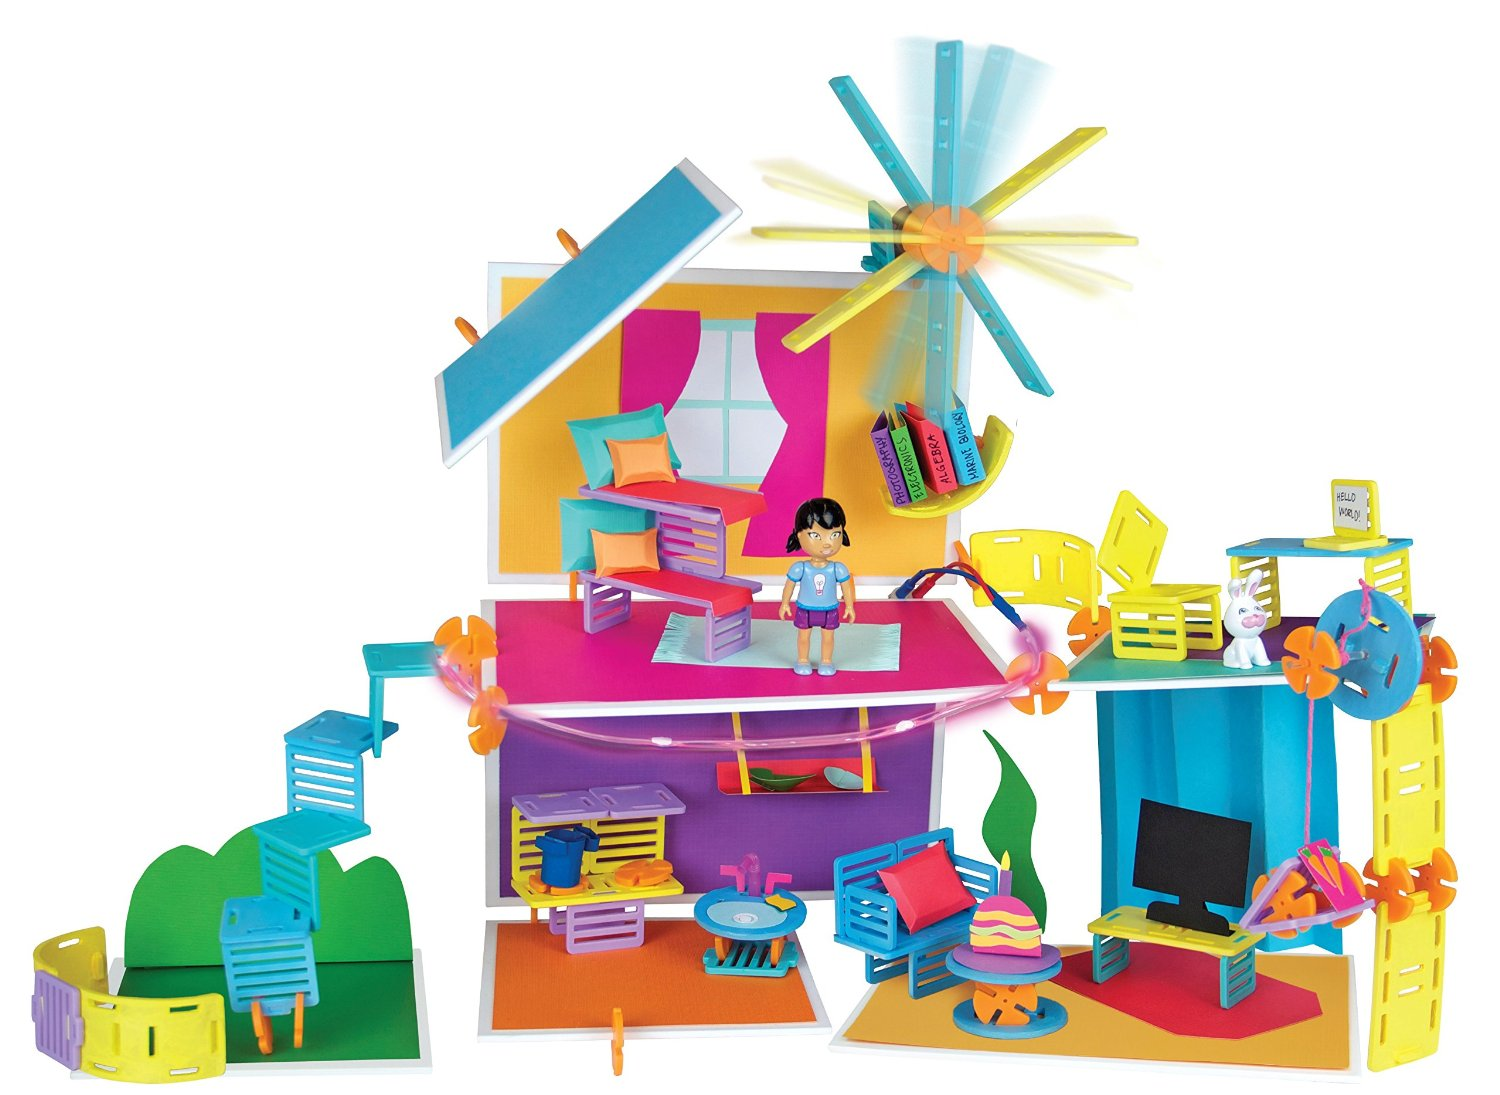 Toy For Ages Five To Seven : Roominate is a diy building kit for future female engineers